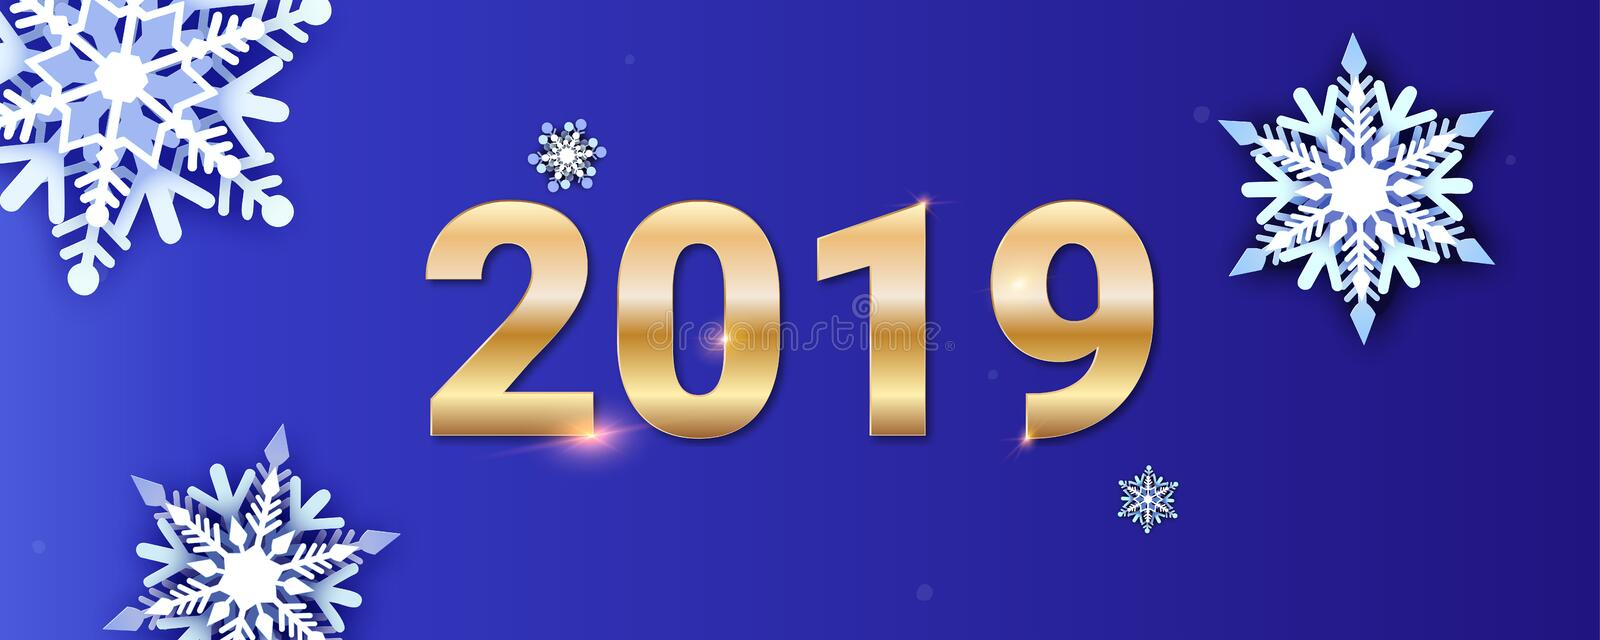 Happy new year greetings card. Golden numbers 2019 on background of snow fall. Volumetric multi layered snowflakes cut stock illustration